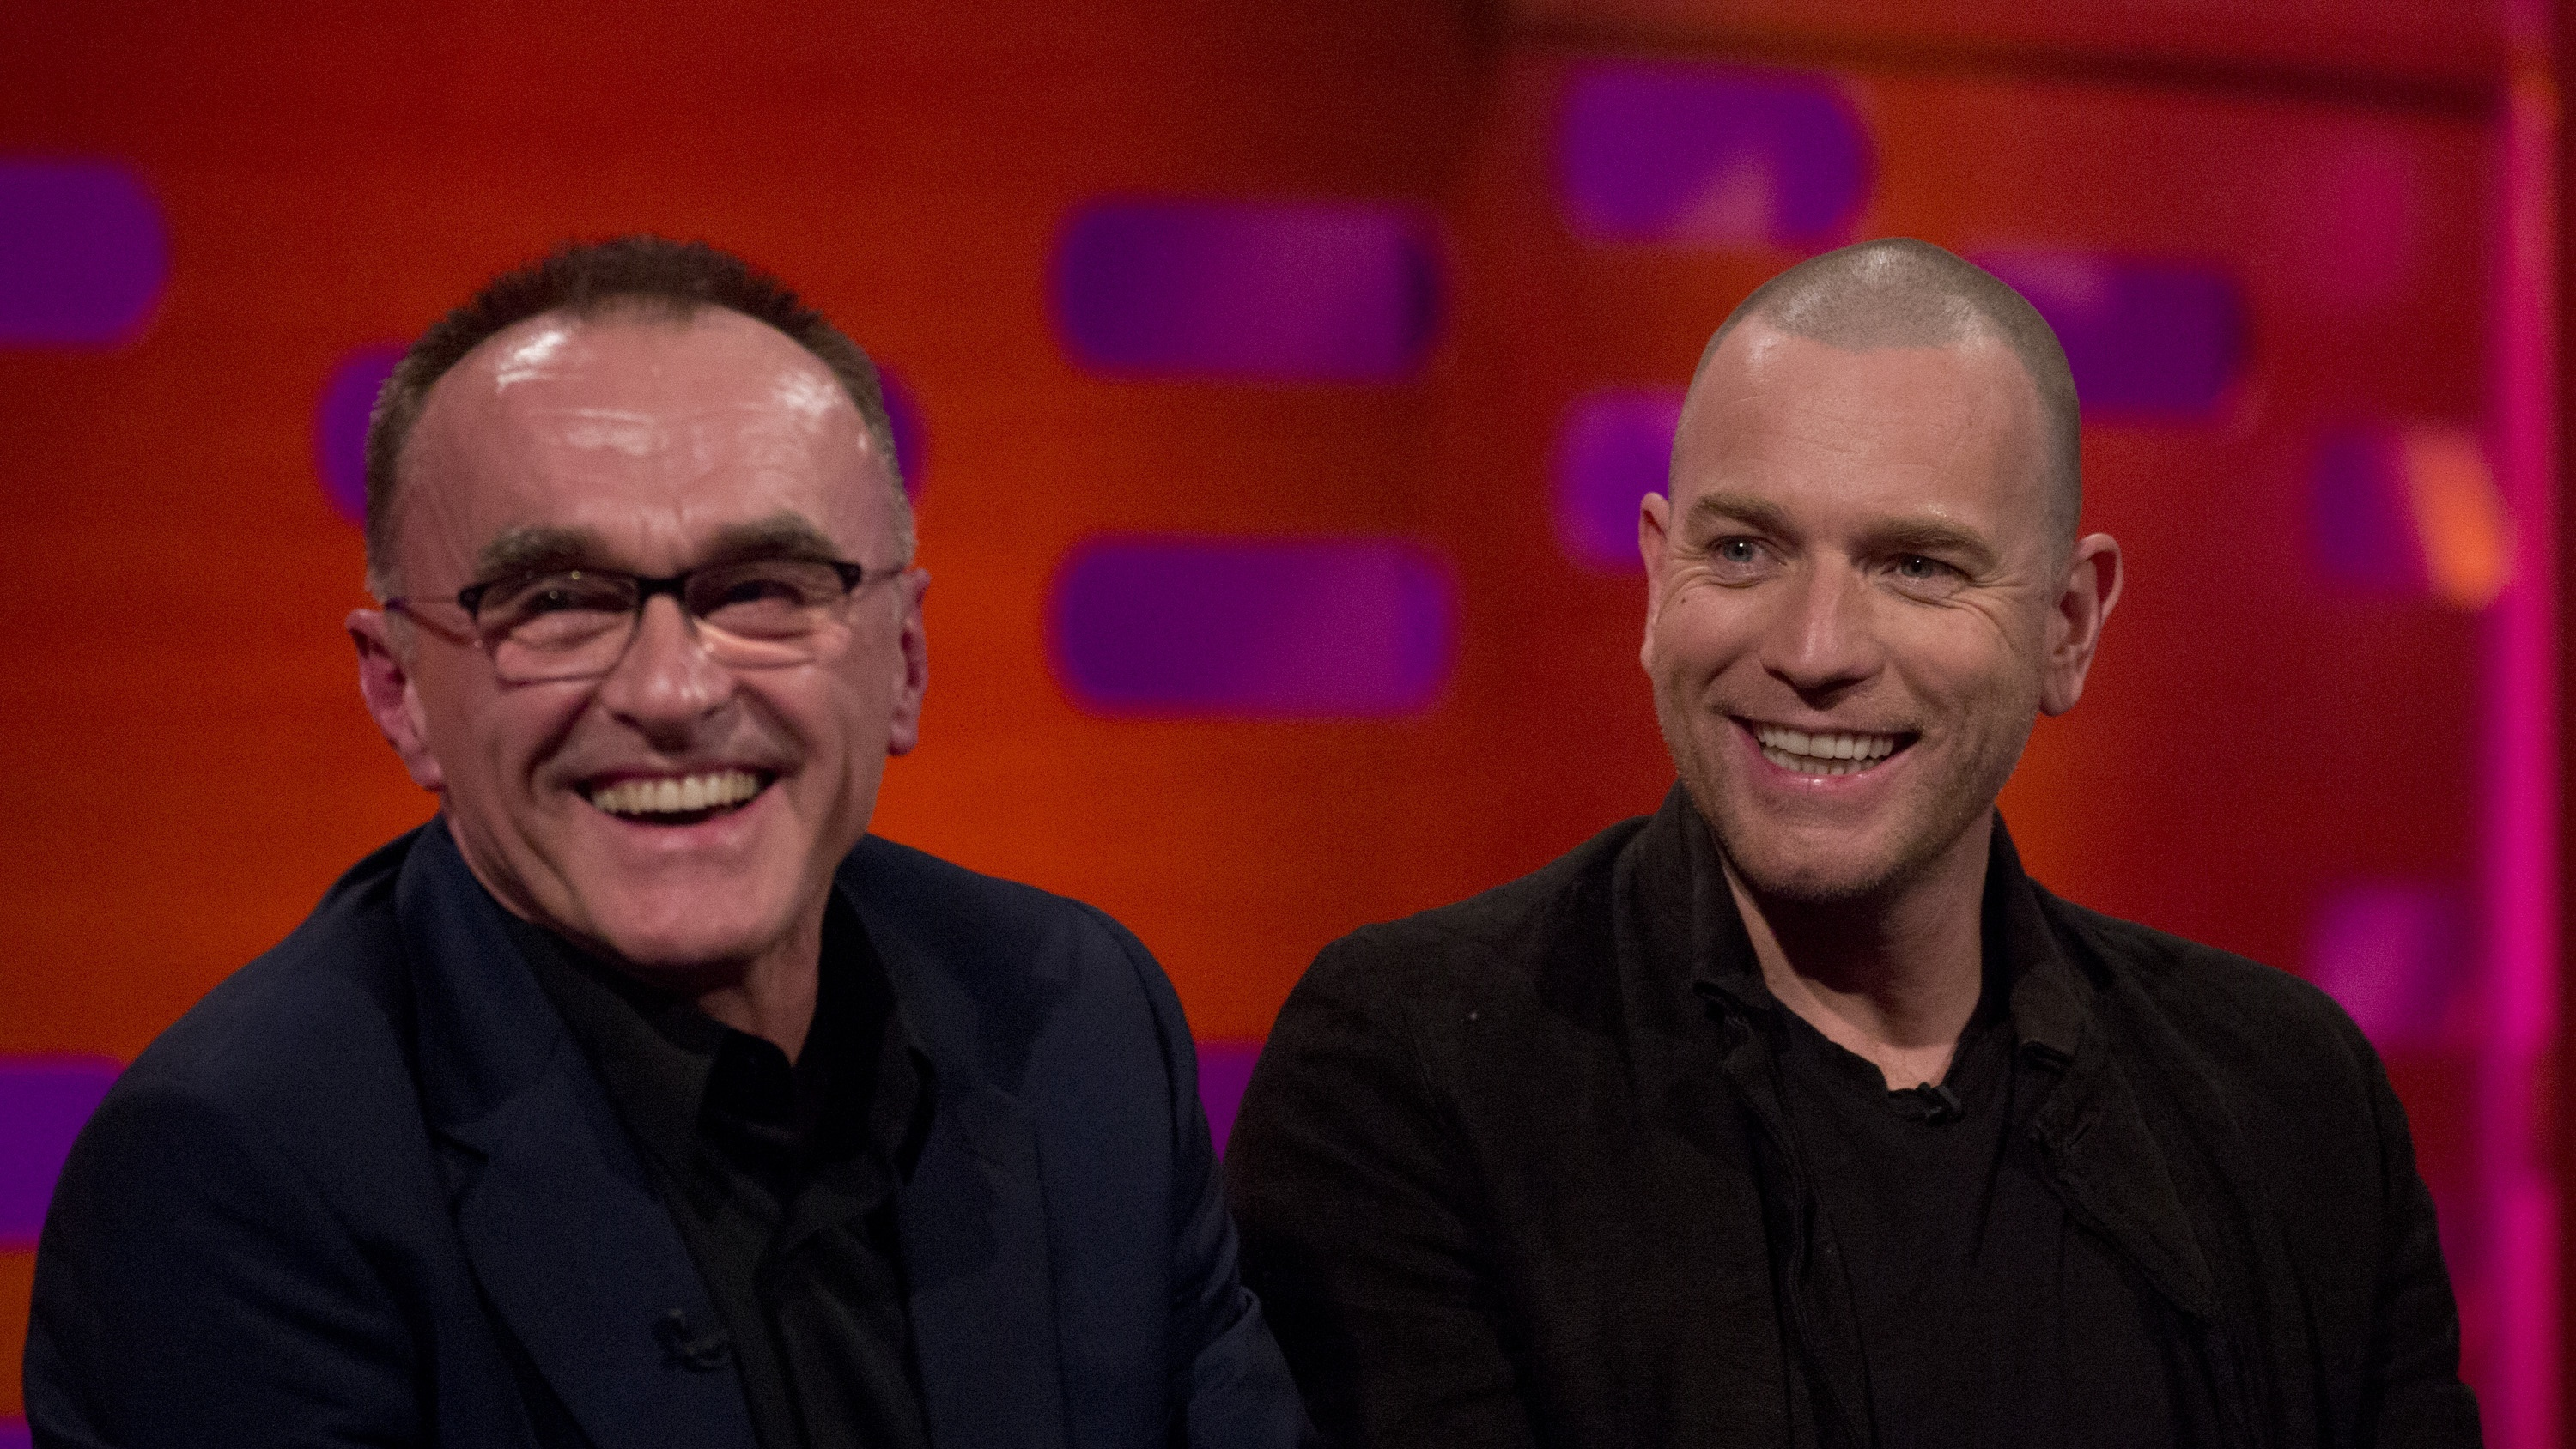 Danny Boyle takes on Ewan McGregor in a quiz on 1996